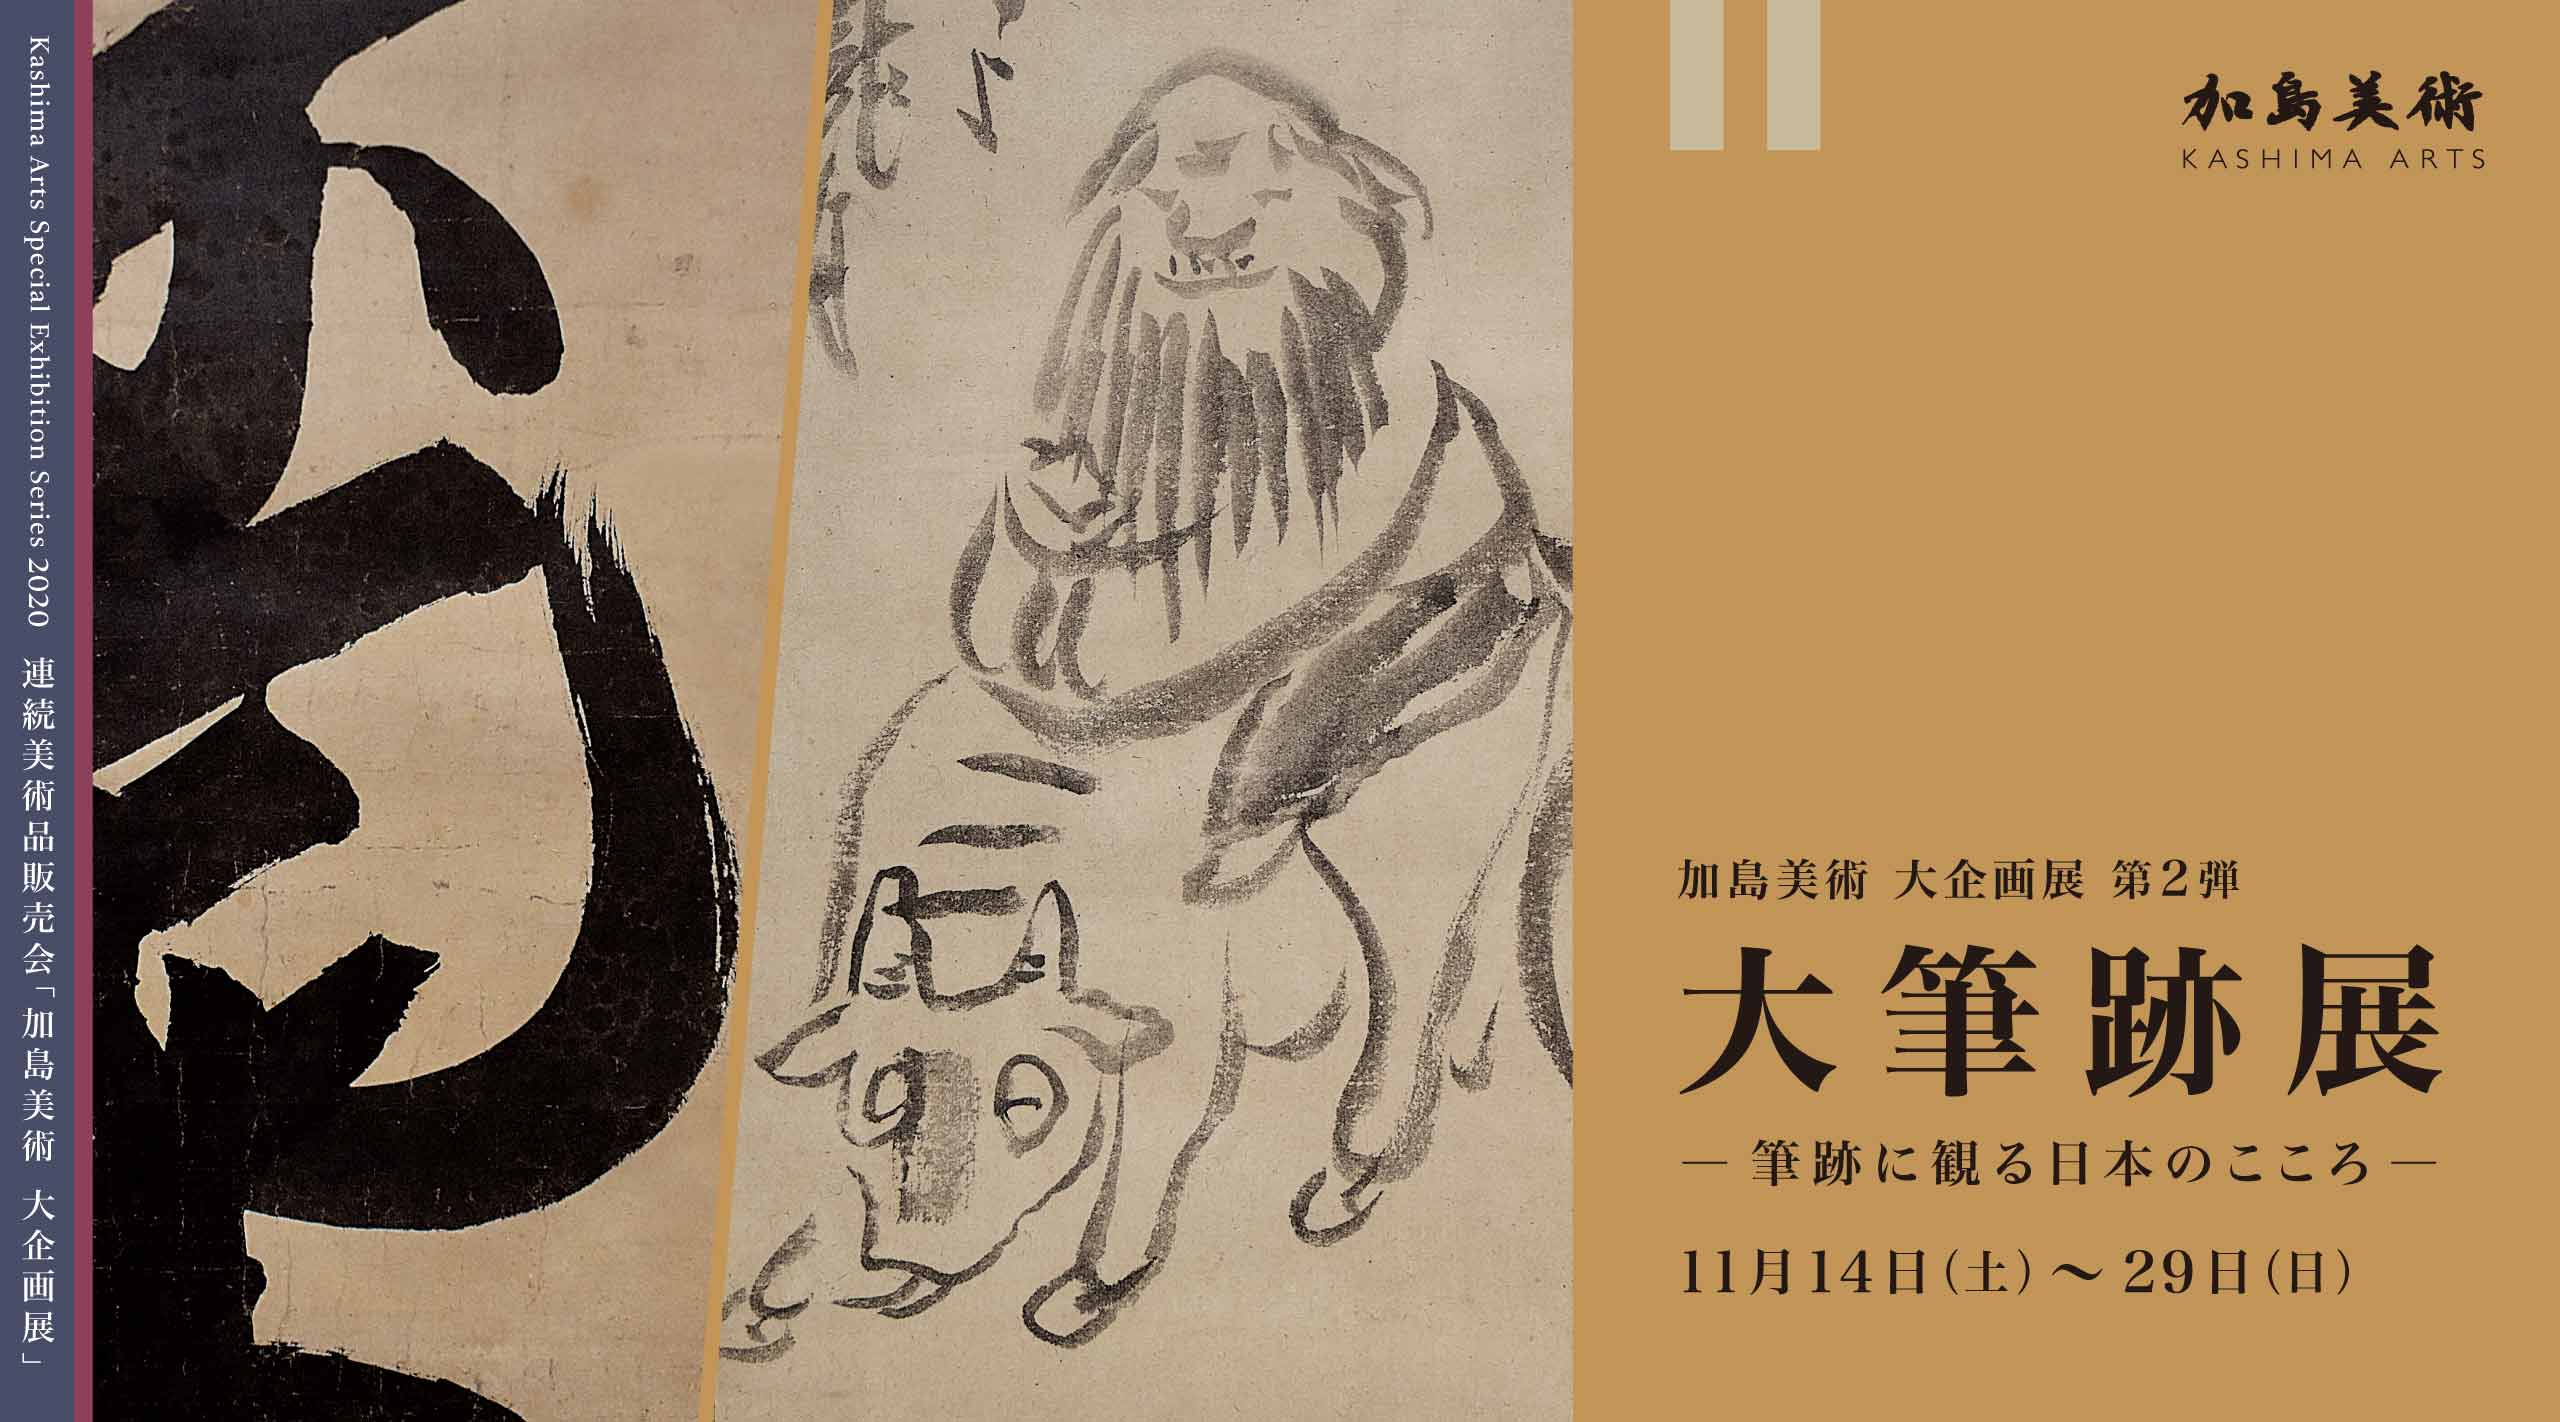 Calligraphy: An Examination of the Japanese Spirit